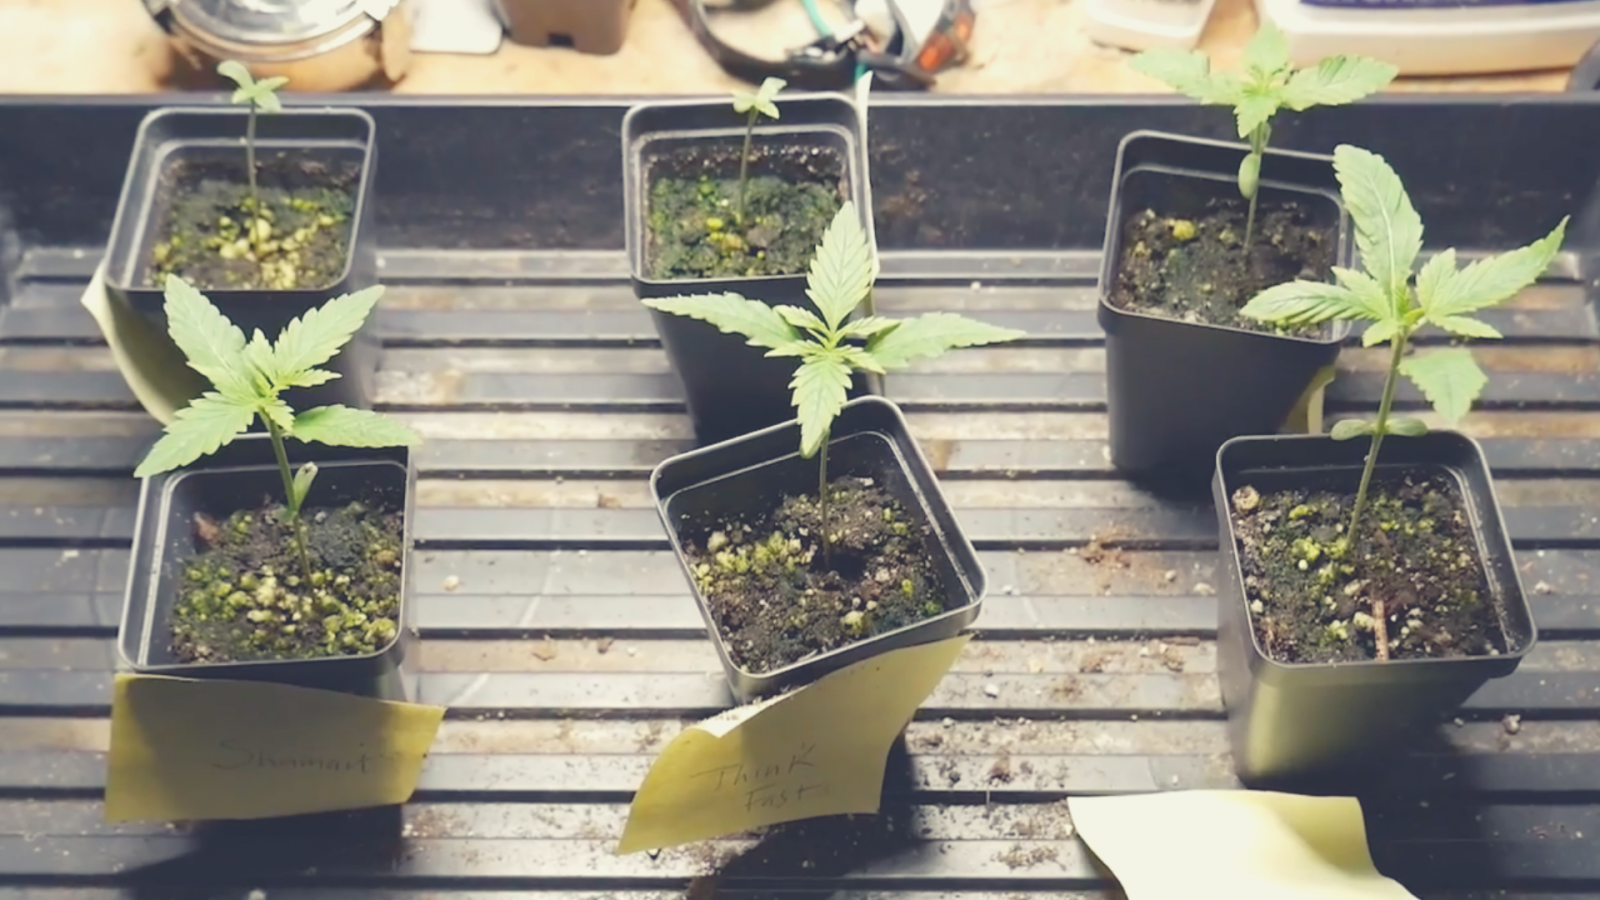 Starting a Cannabis Grow from Seeds | What's Going On in Dave's Grow?